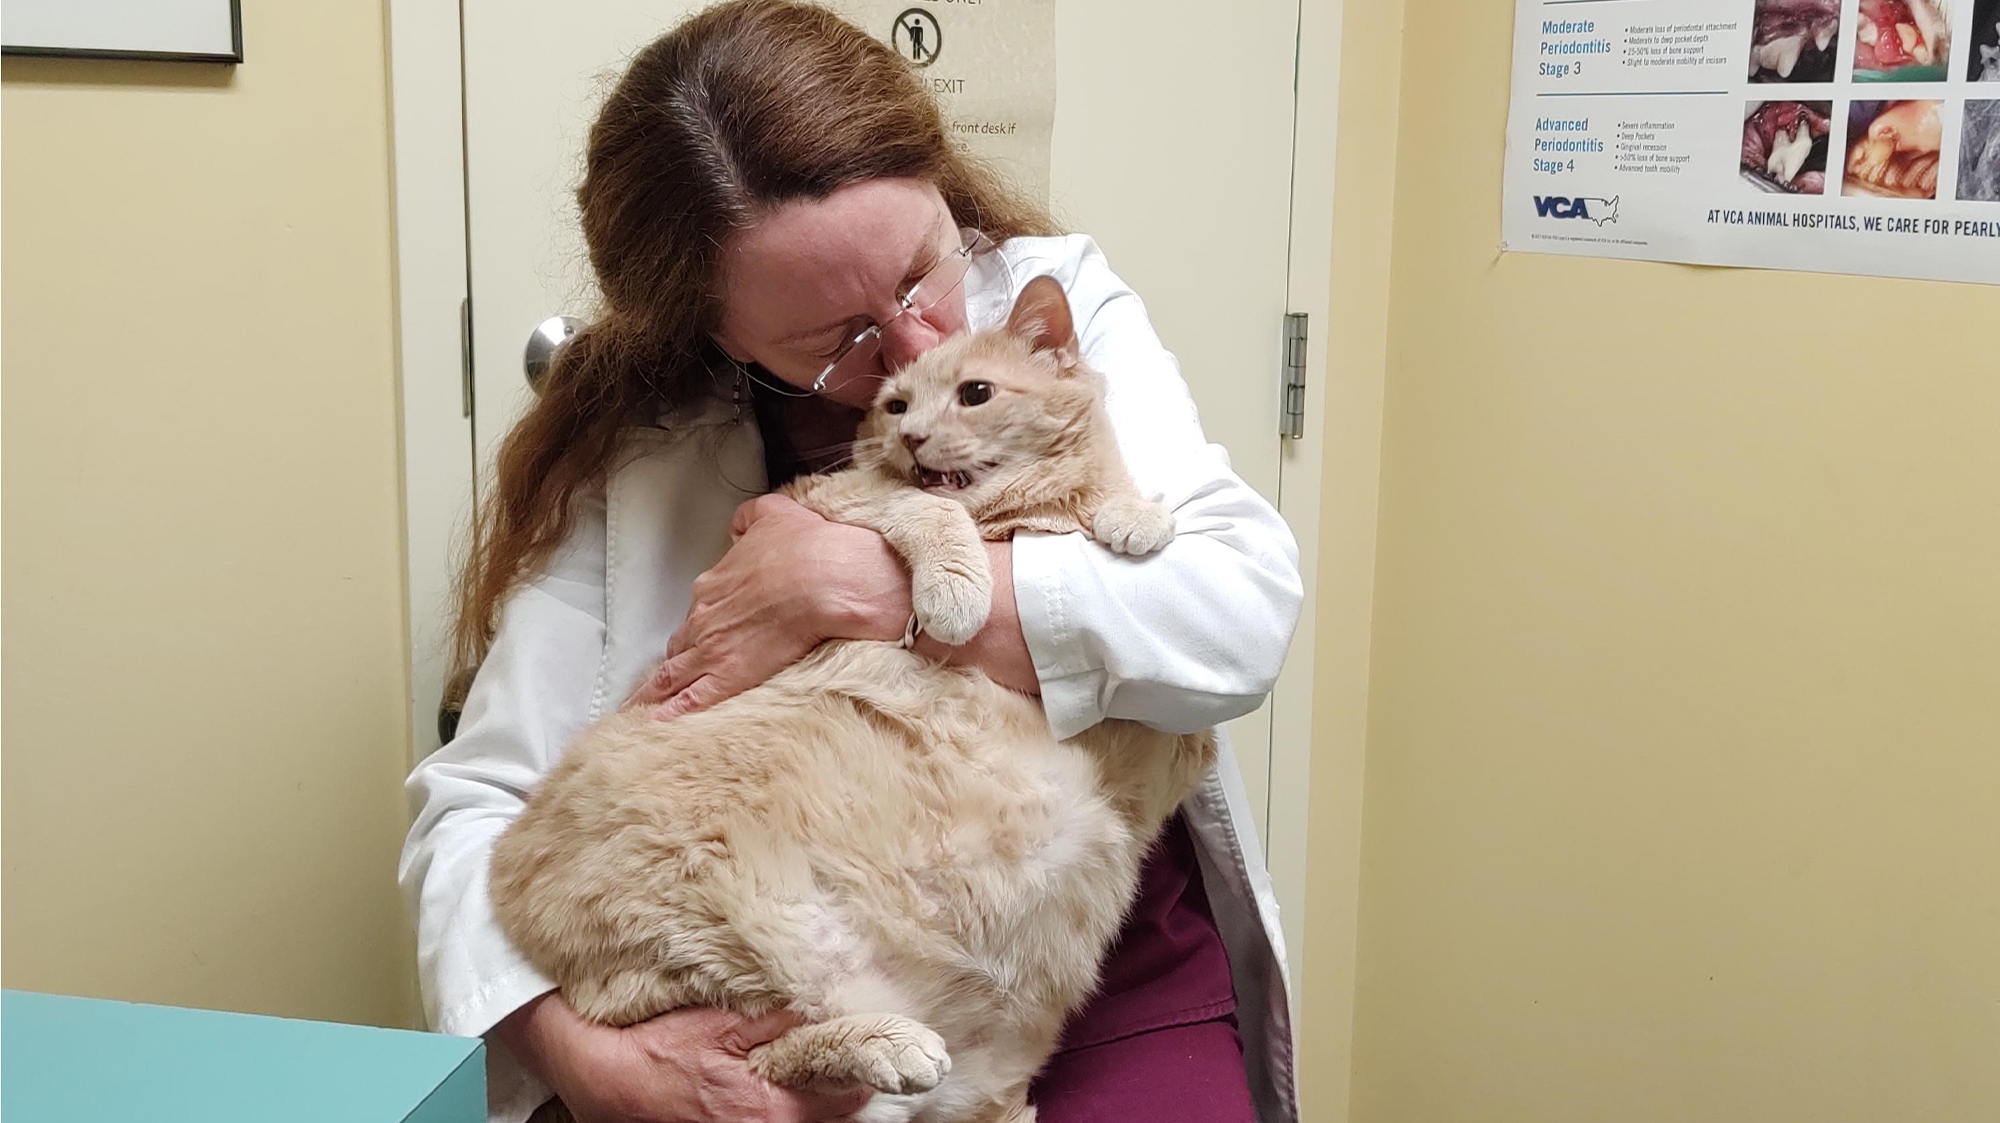 VCA Voice: Metro Cat Hospital extends life of 37 pound cat